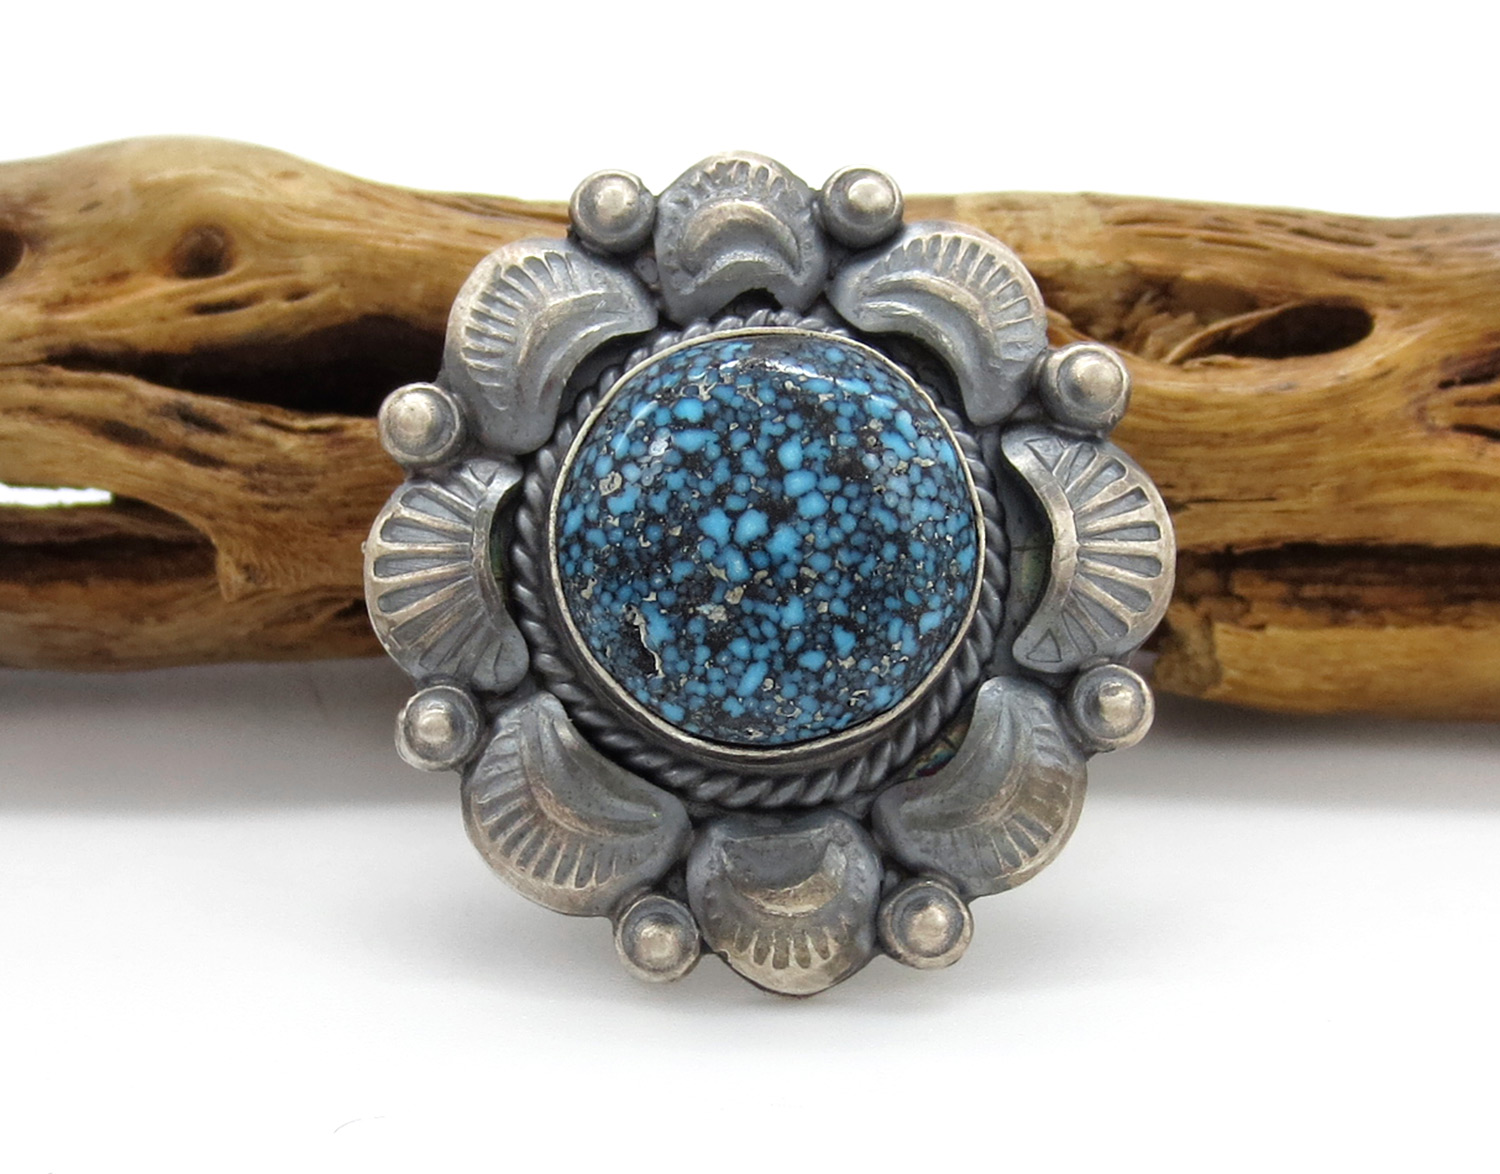 Old Style Kingman Web Turquoise & Sterling Silver Ring Sz 8.5 - 2126dt